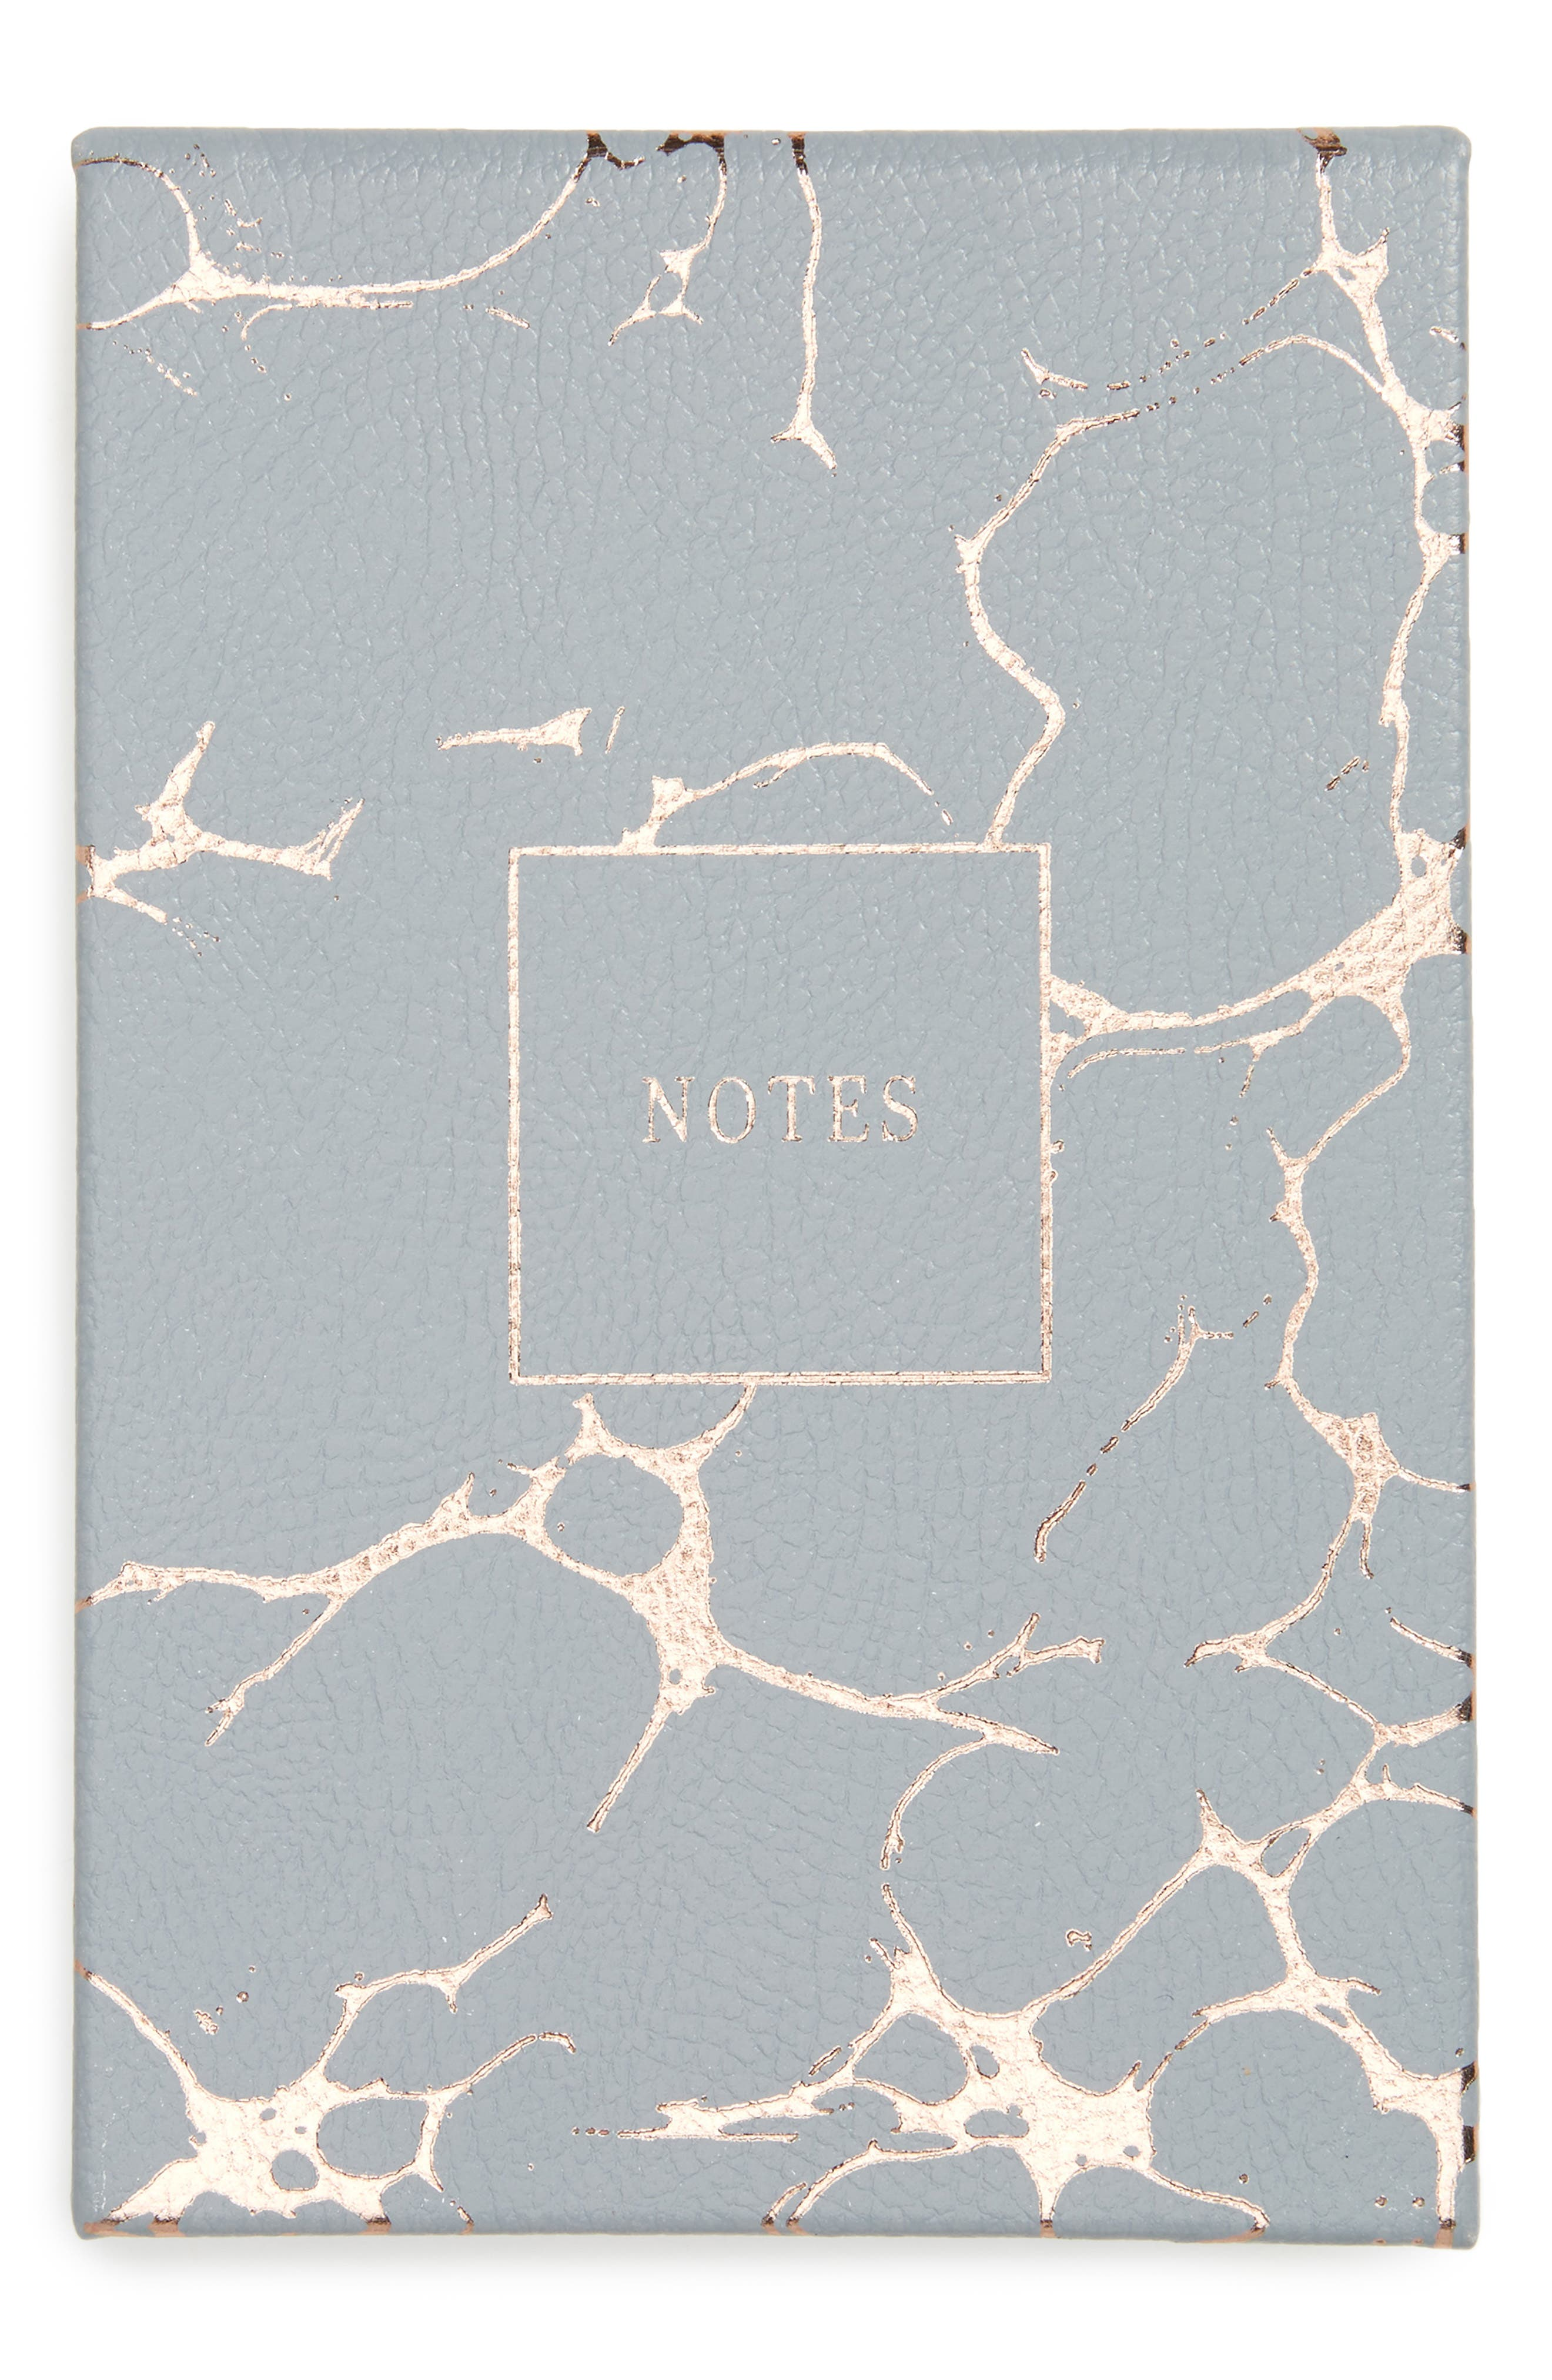 Alternate Image 1 Selected - Fringe Studio Grey Marble Notepad